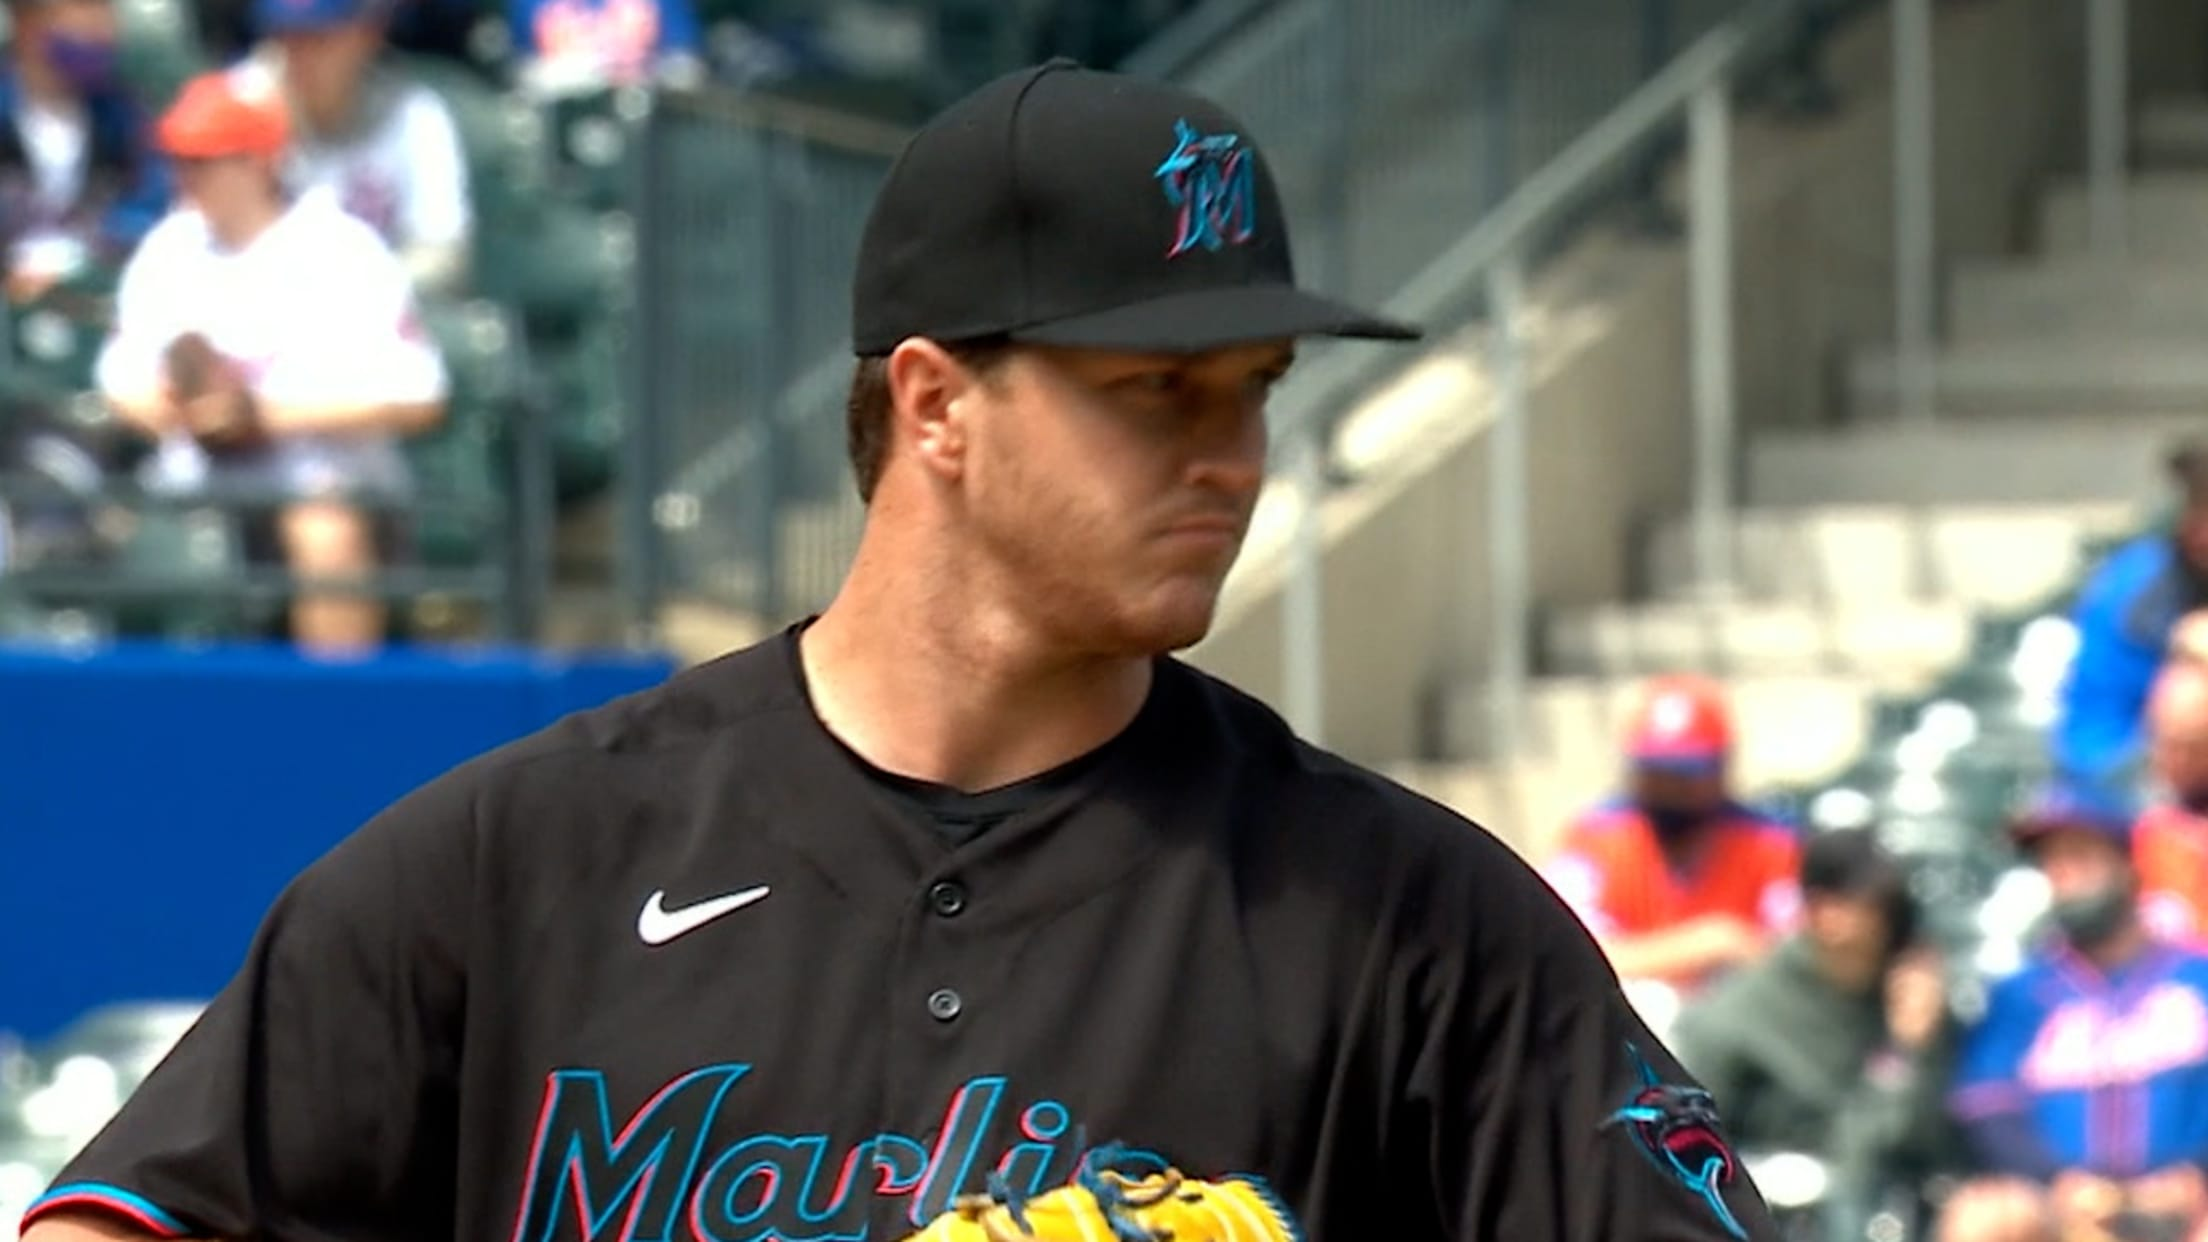 Rogers' impressive outing